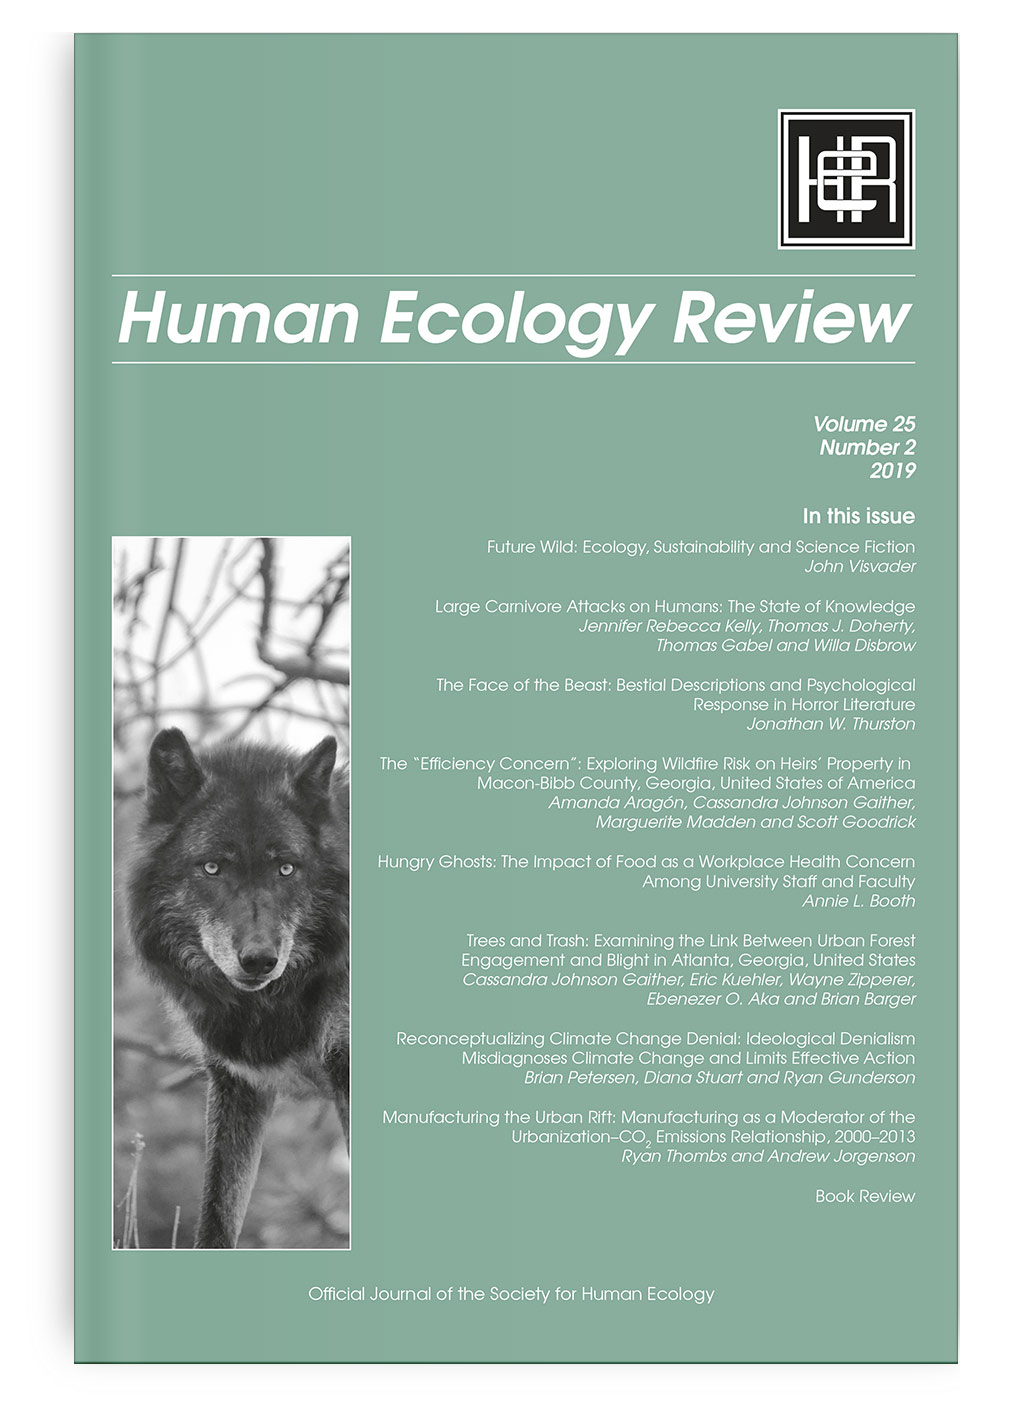 Human Ecology Review: Volume 25, Number 2